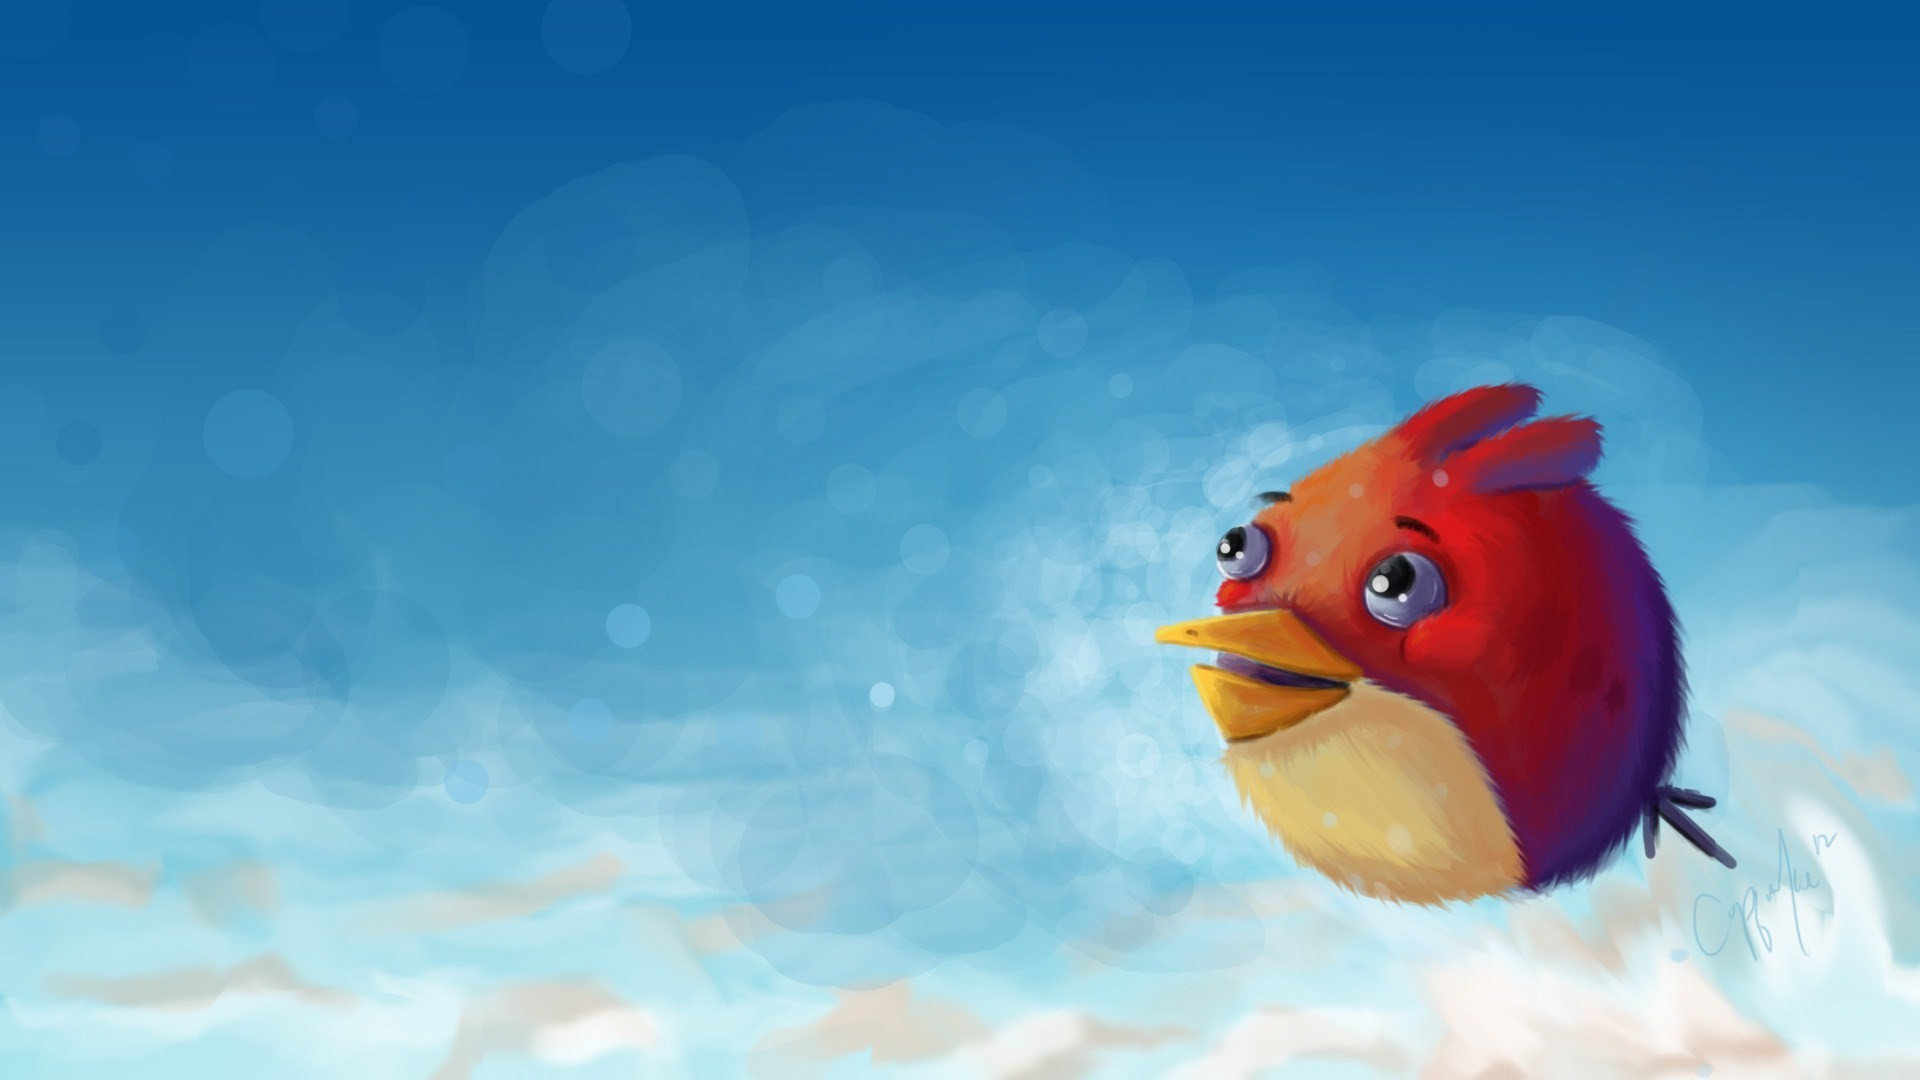 Angry Bird Art HD 1080p Wallpapers Download HD Wallpapers Source 1920x1080